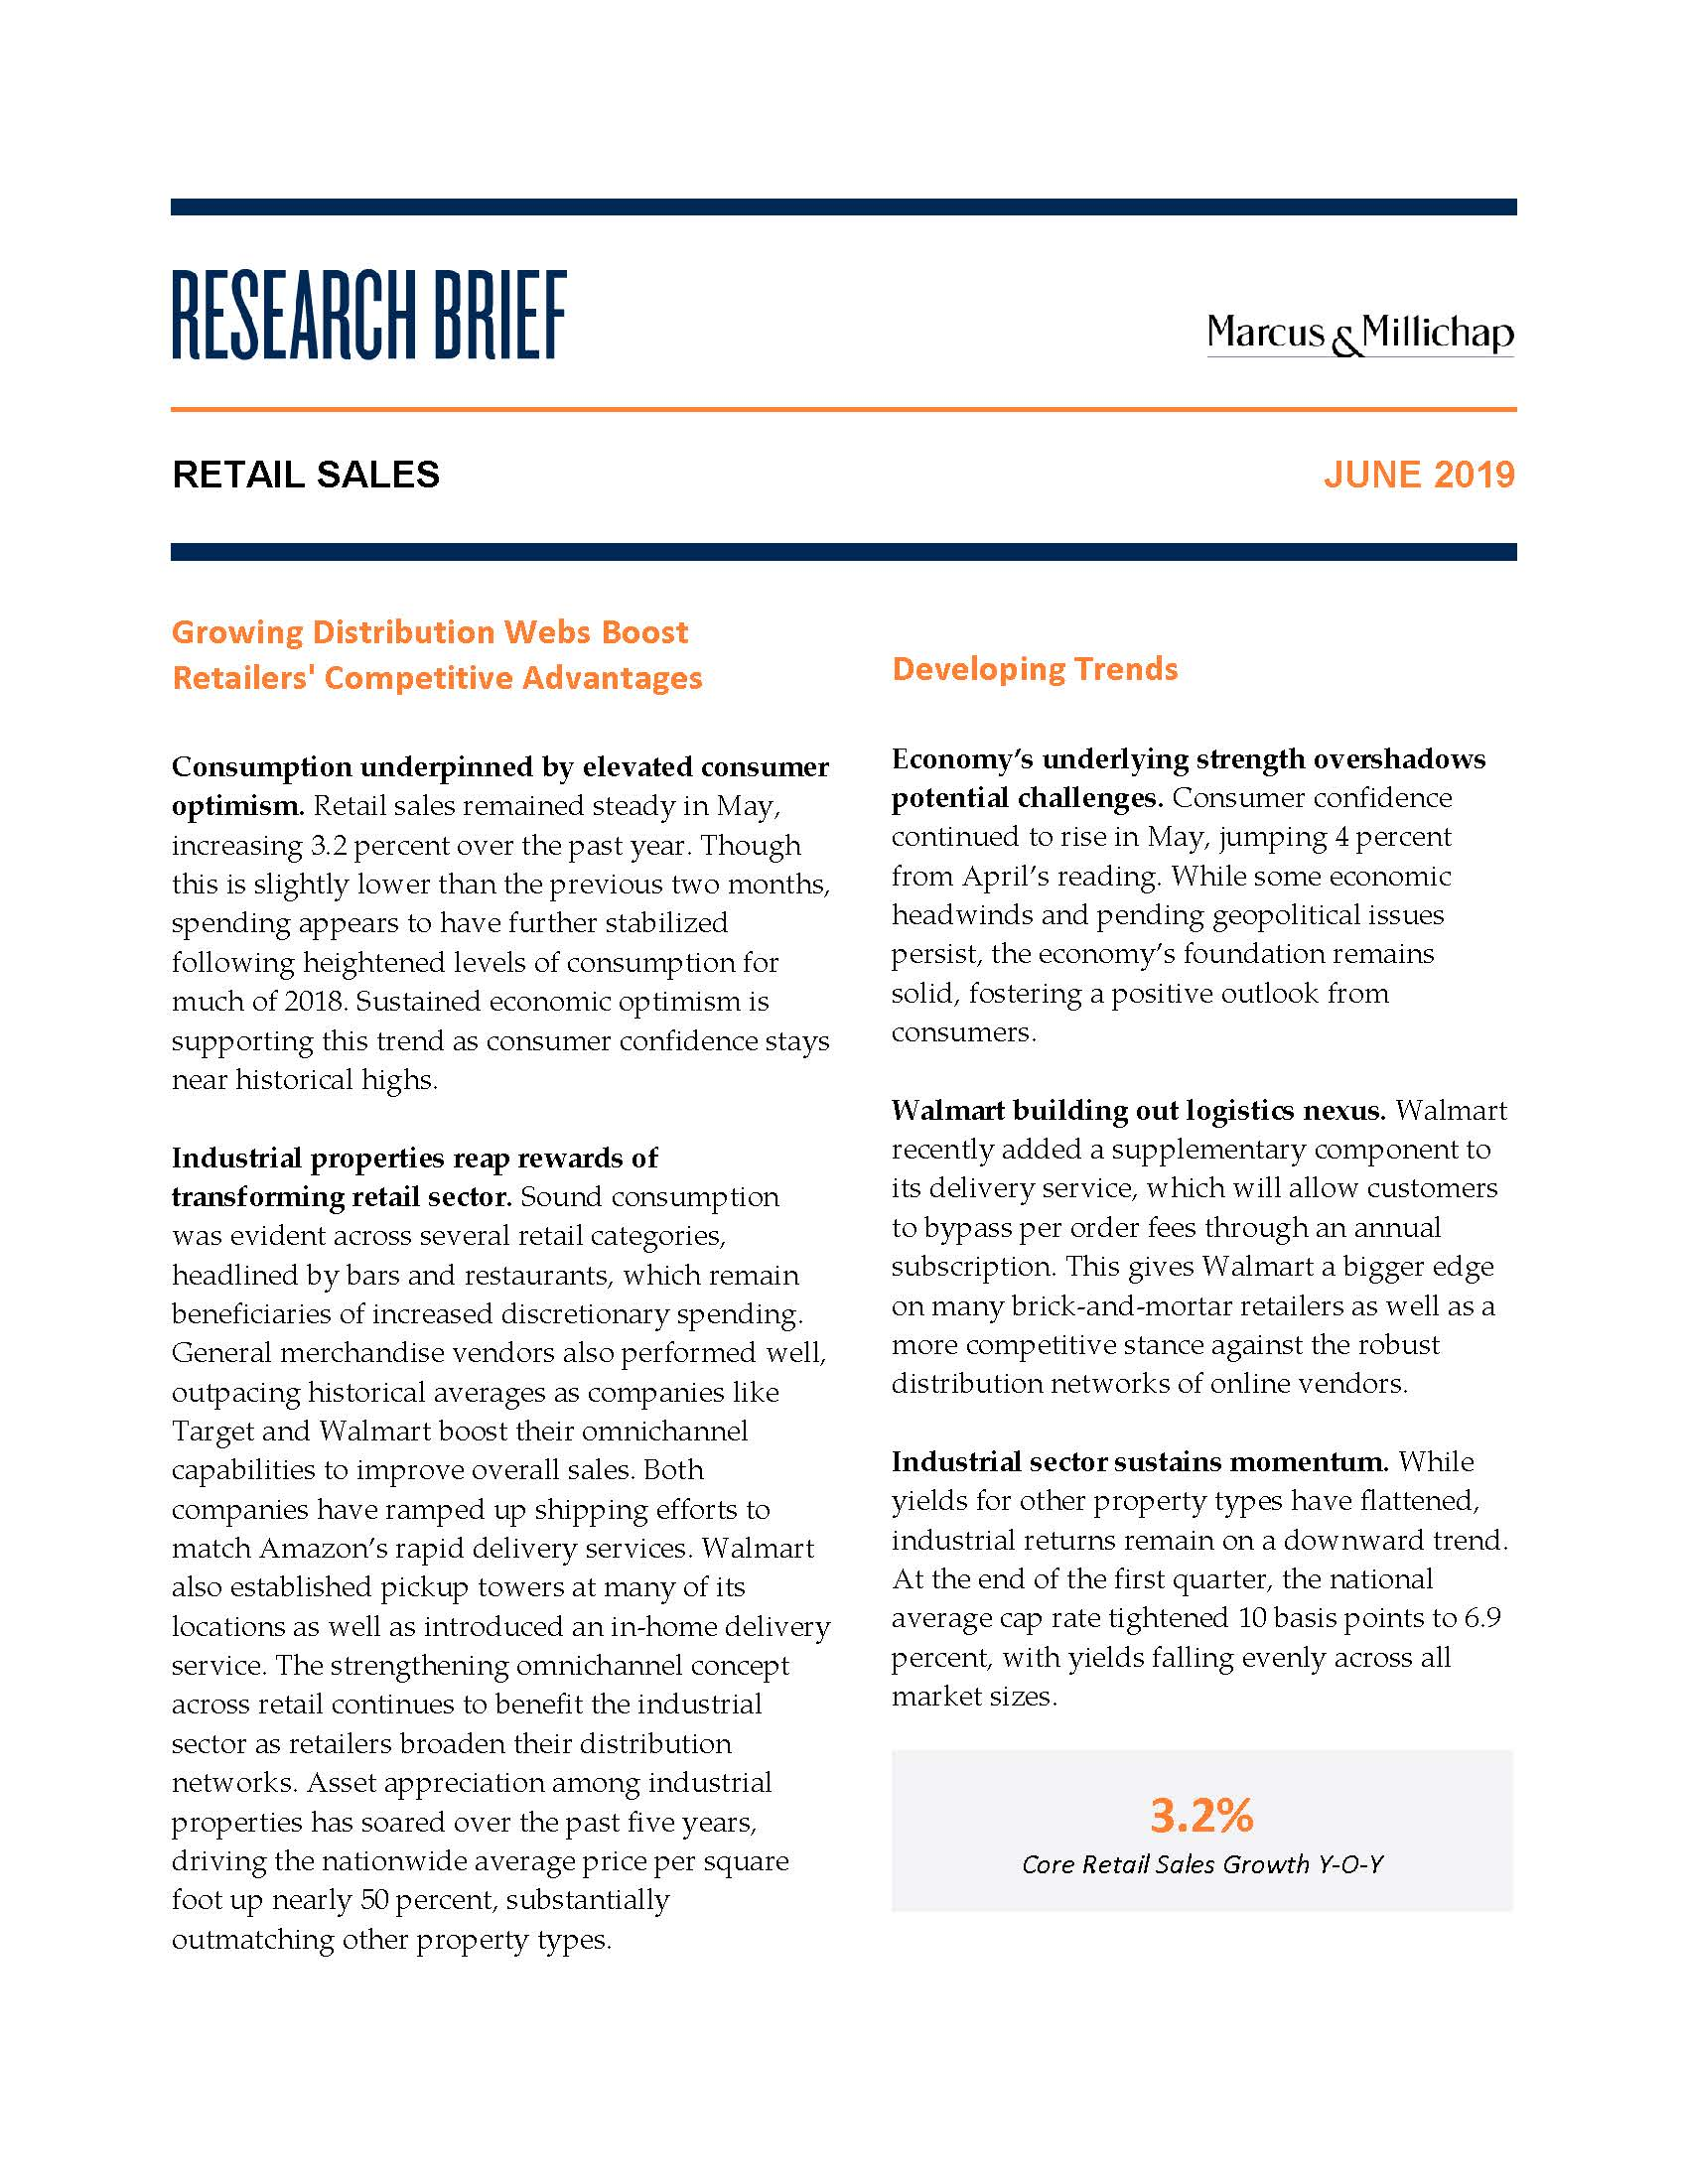 Research Brief - June 2019Retail Sales - Consumption underpinned by elevated consumer optimism. Retail sales remained steady in May, increasing 3.2 percent over the past year. Though this is slightly lower than the previous two months, spending appears to have further stabilized following heightened levels of consumption for much of 2018. Sustained economic optimism is supporting this trend as consumer confidence stays near historical highs.